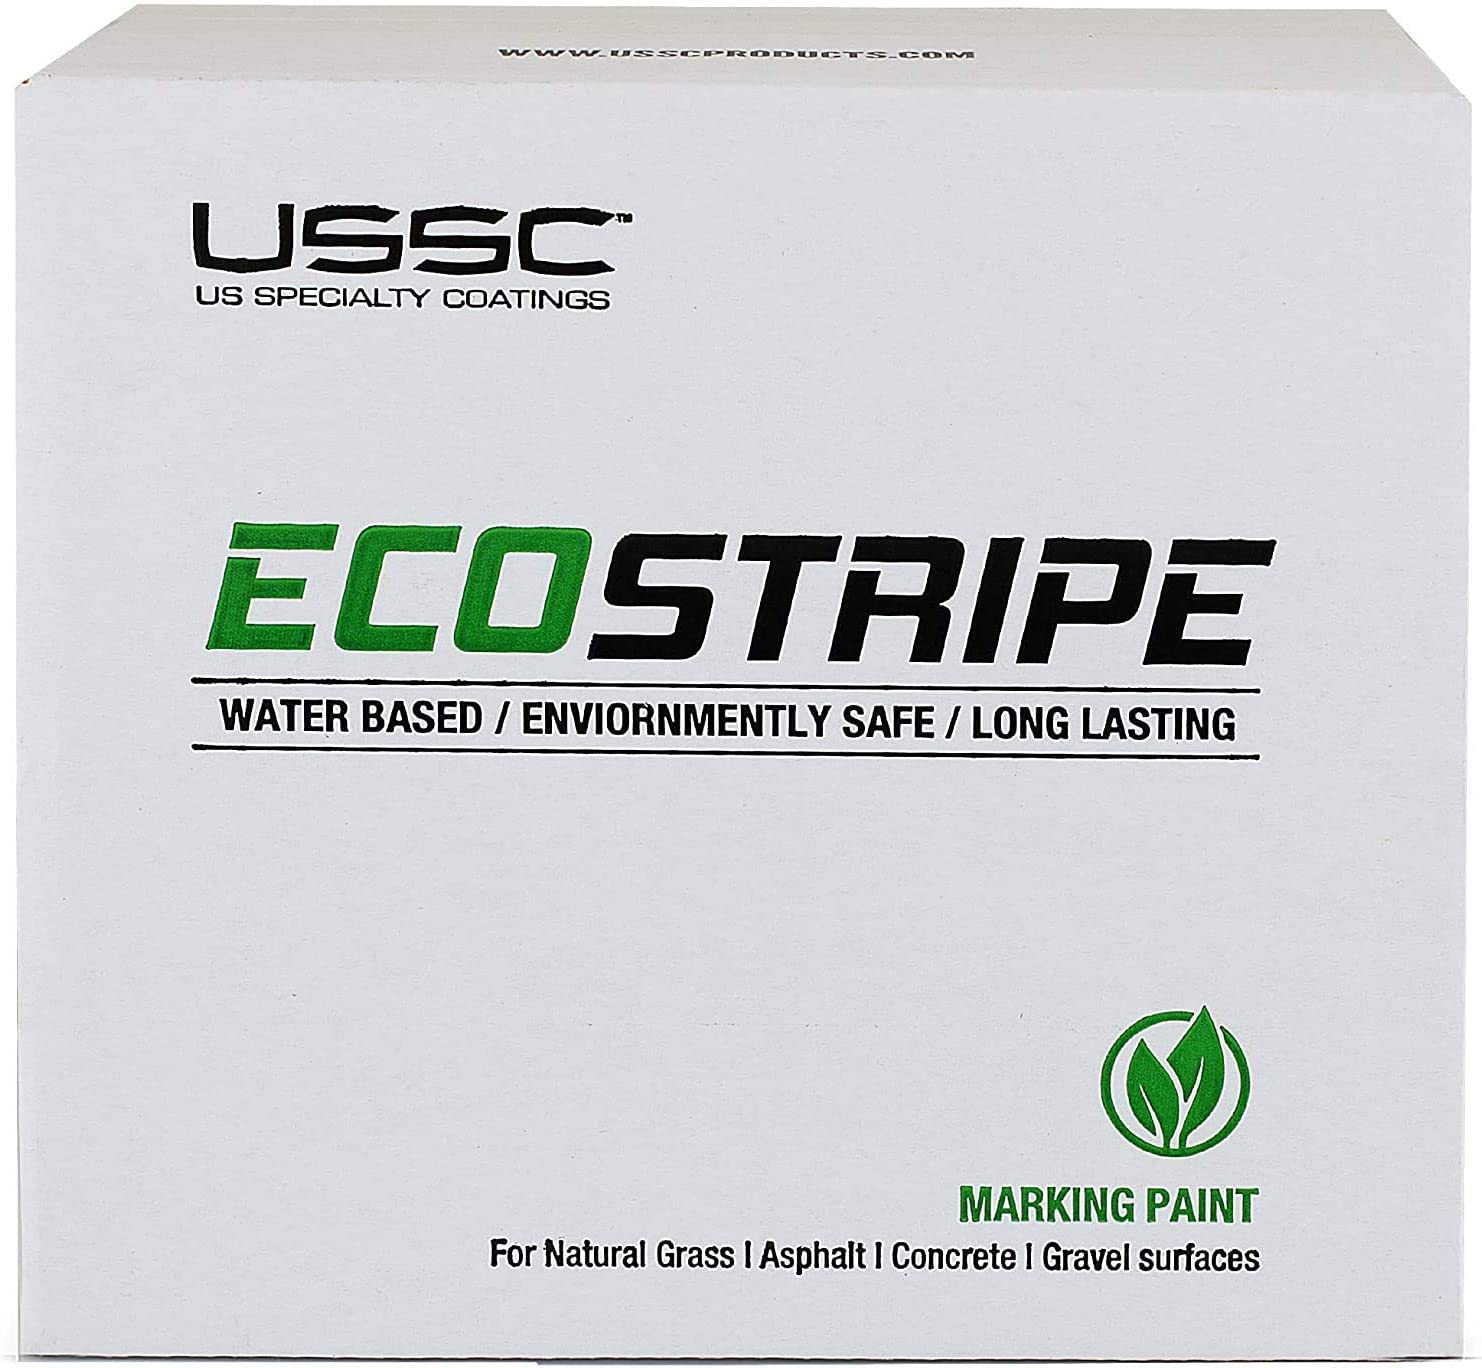 24 Cans Athletic Field Marking Paint Whitest Most Durable Water-Based Marking Paint Available! EcoStripe White The Brightest 2 Pack Case